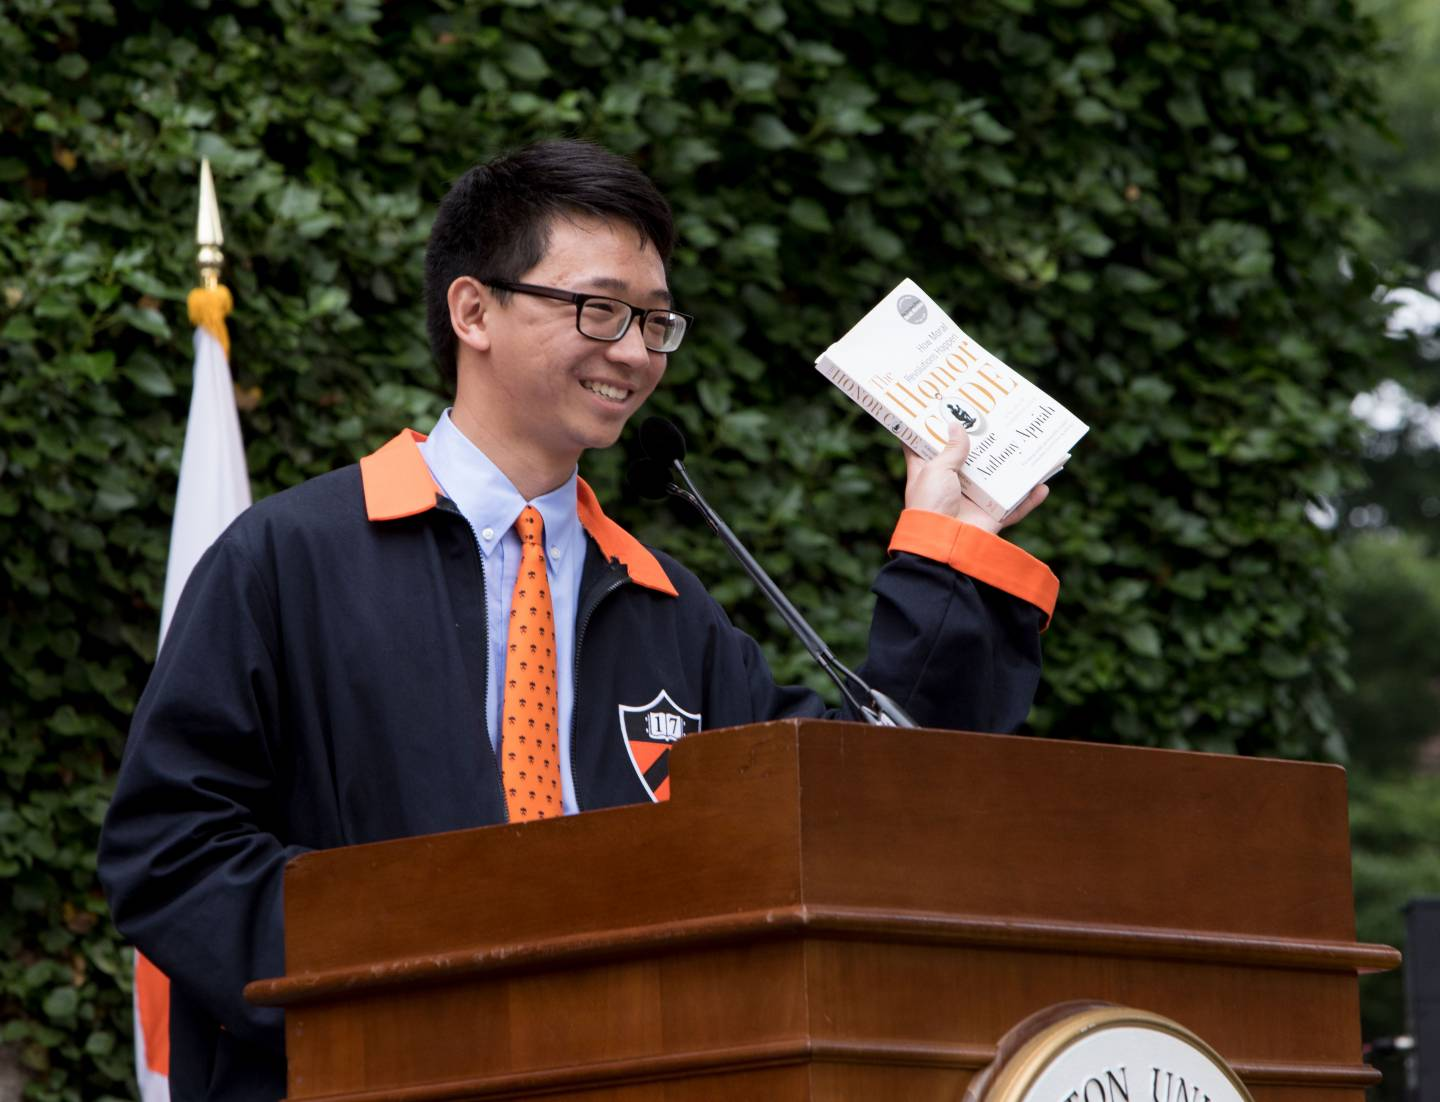 Class president at podium holding book during Class Day 2017 ceremony